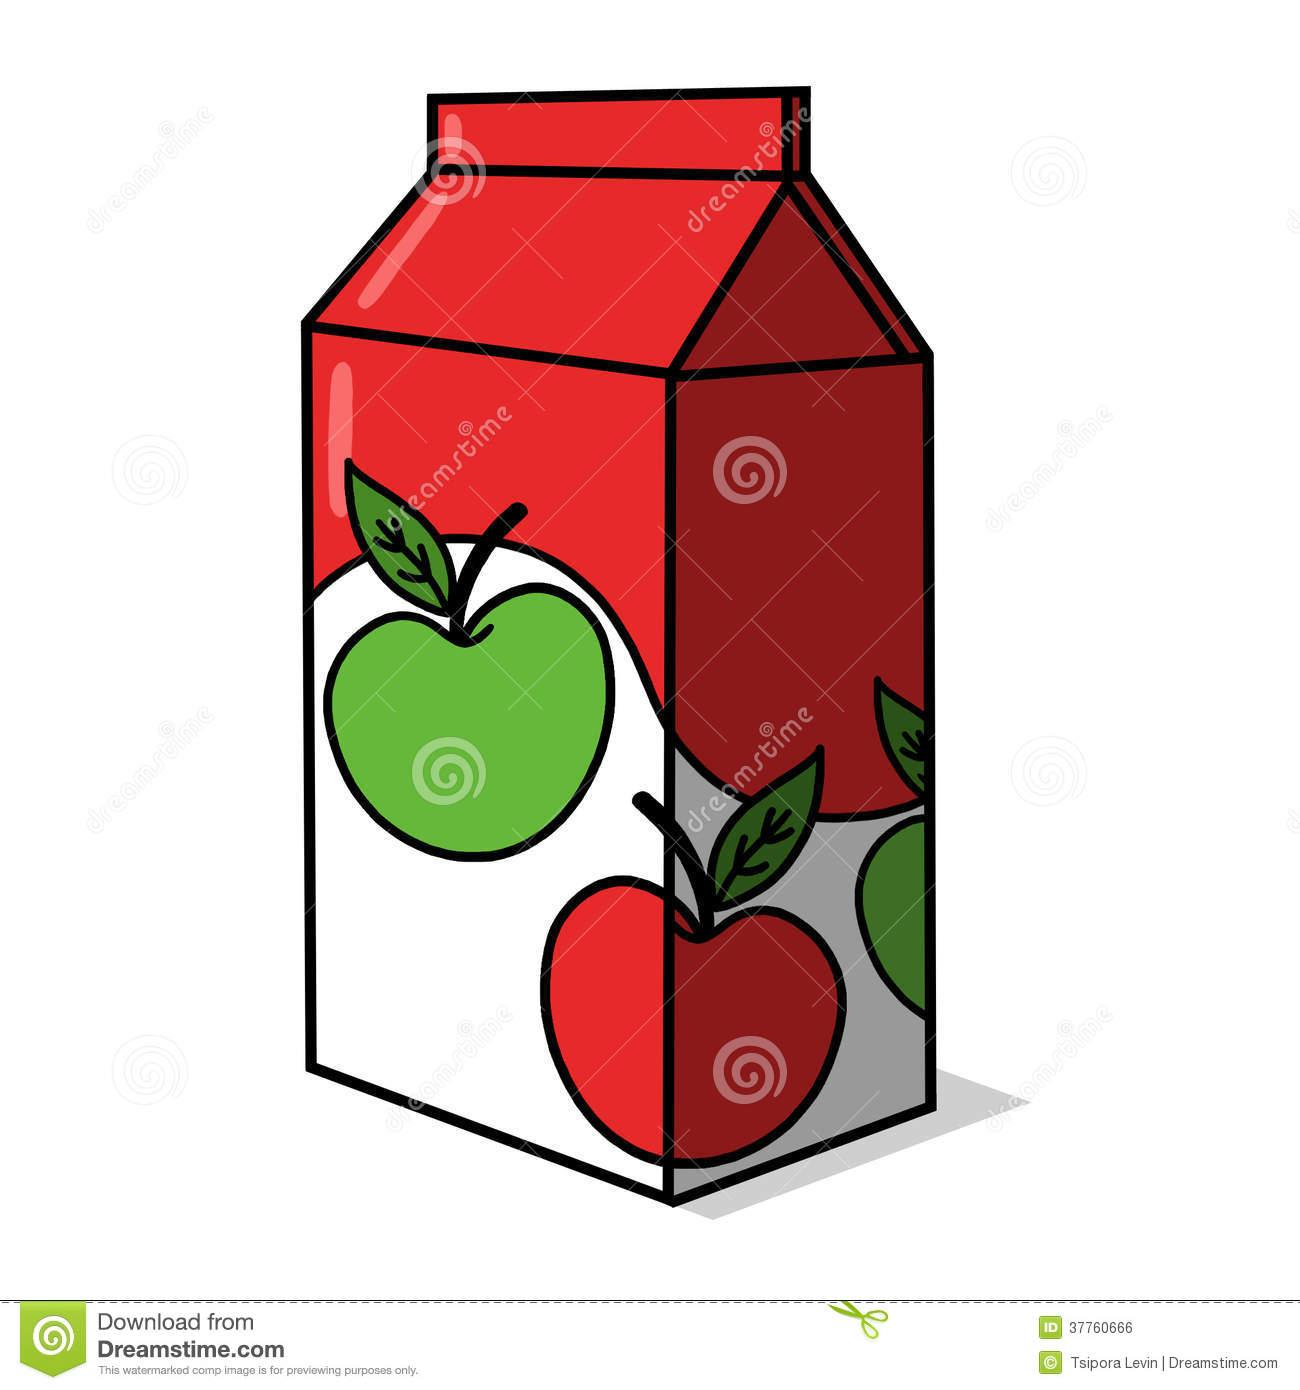 bus drawings illustrations with Royalty Free Stock Image Apple Juice Carton Image37760666 on Safety Clip Art as well Pictures Of Transportation Vehicles furthermore 64008 Different Cartoon People Design Vector 03 also 466052261412880831 moreover Watercolor Painting.